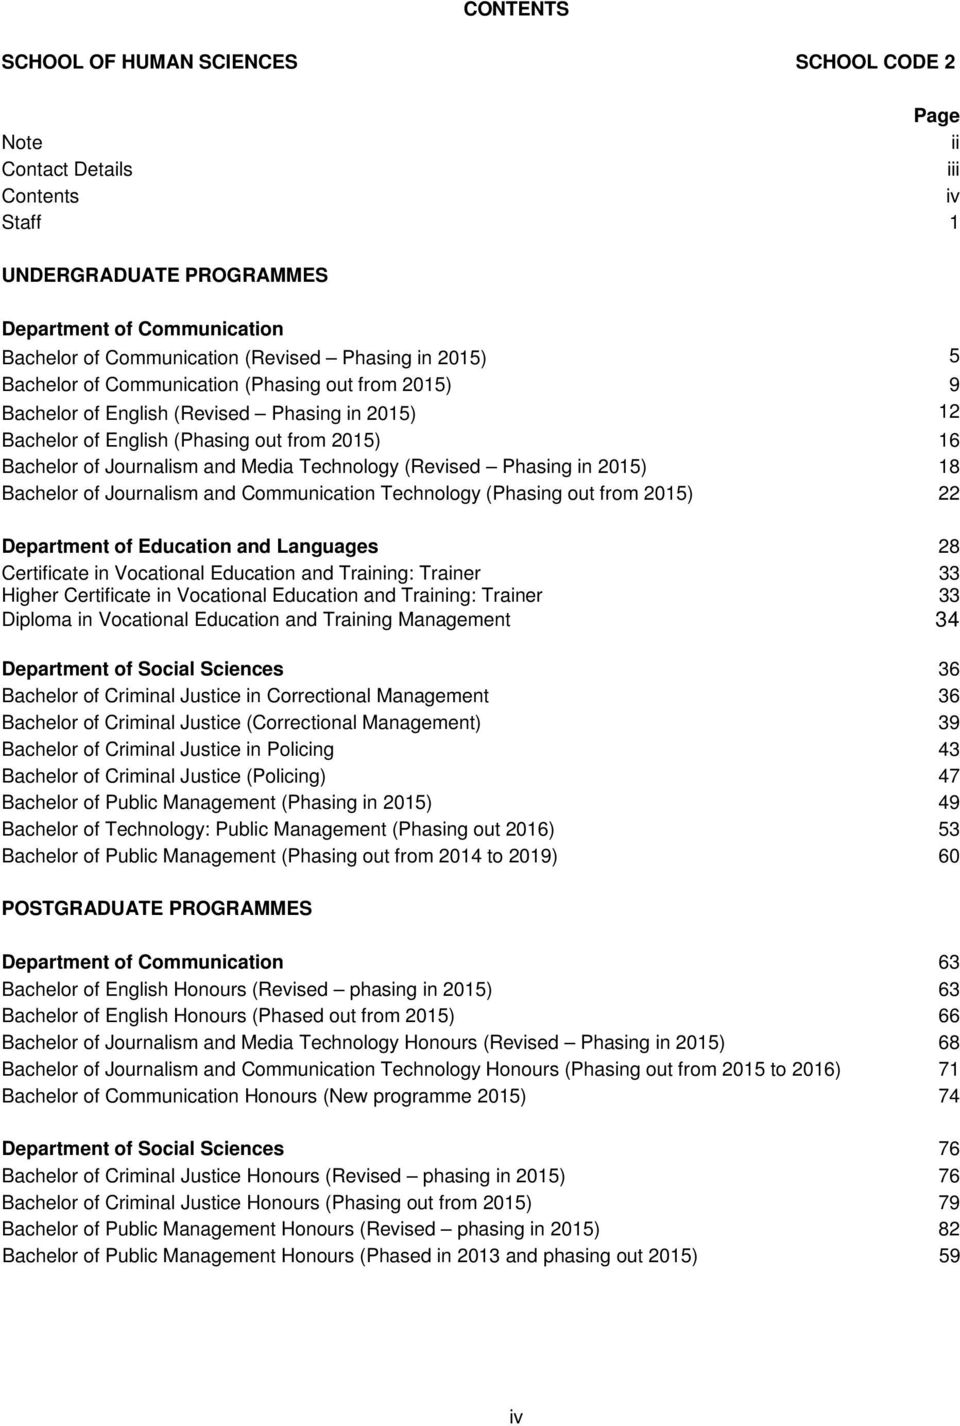 (Revised Phasing in 2015) 18 Bachelor of Journalism and Communication Technology (Phasing out from 2015) 22 Department of Education and Languages 28 Certificate in Vocational Education and Training: